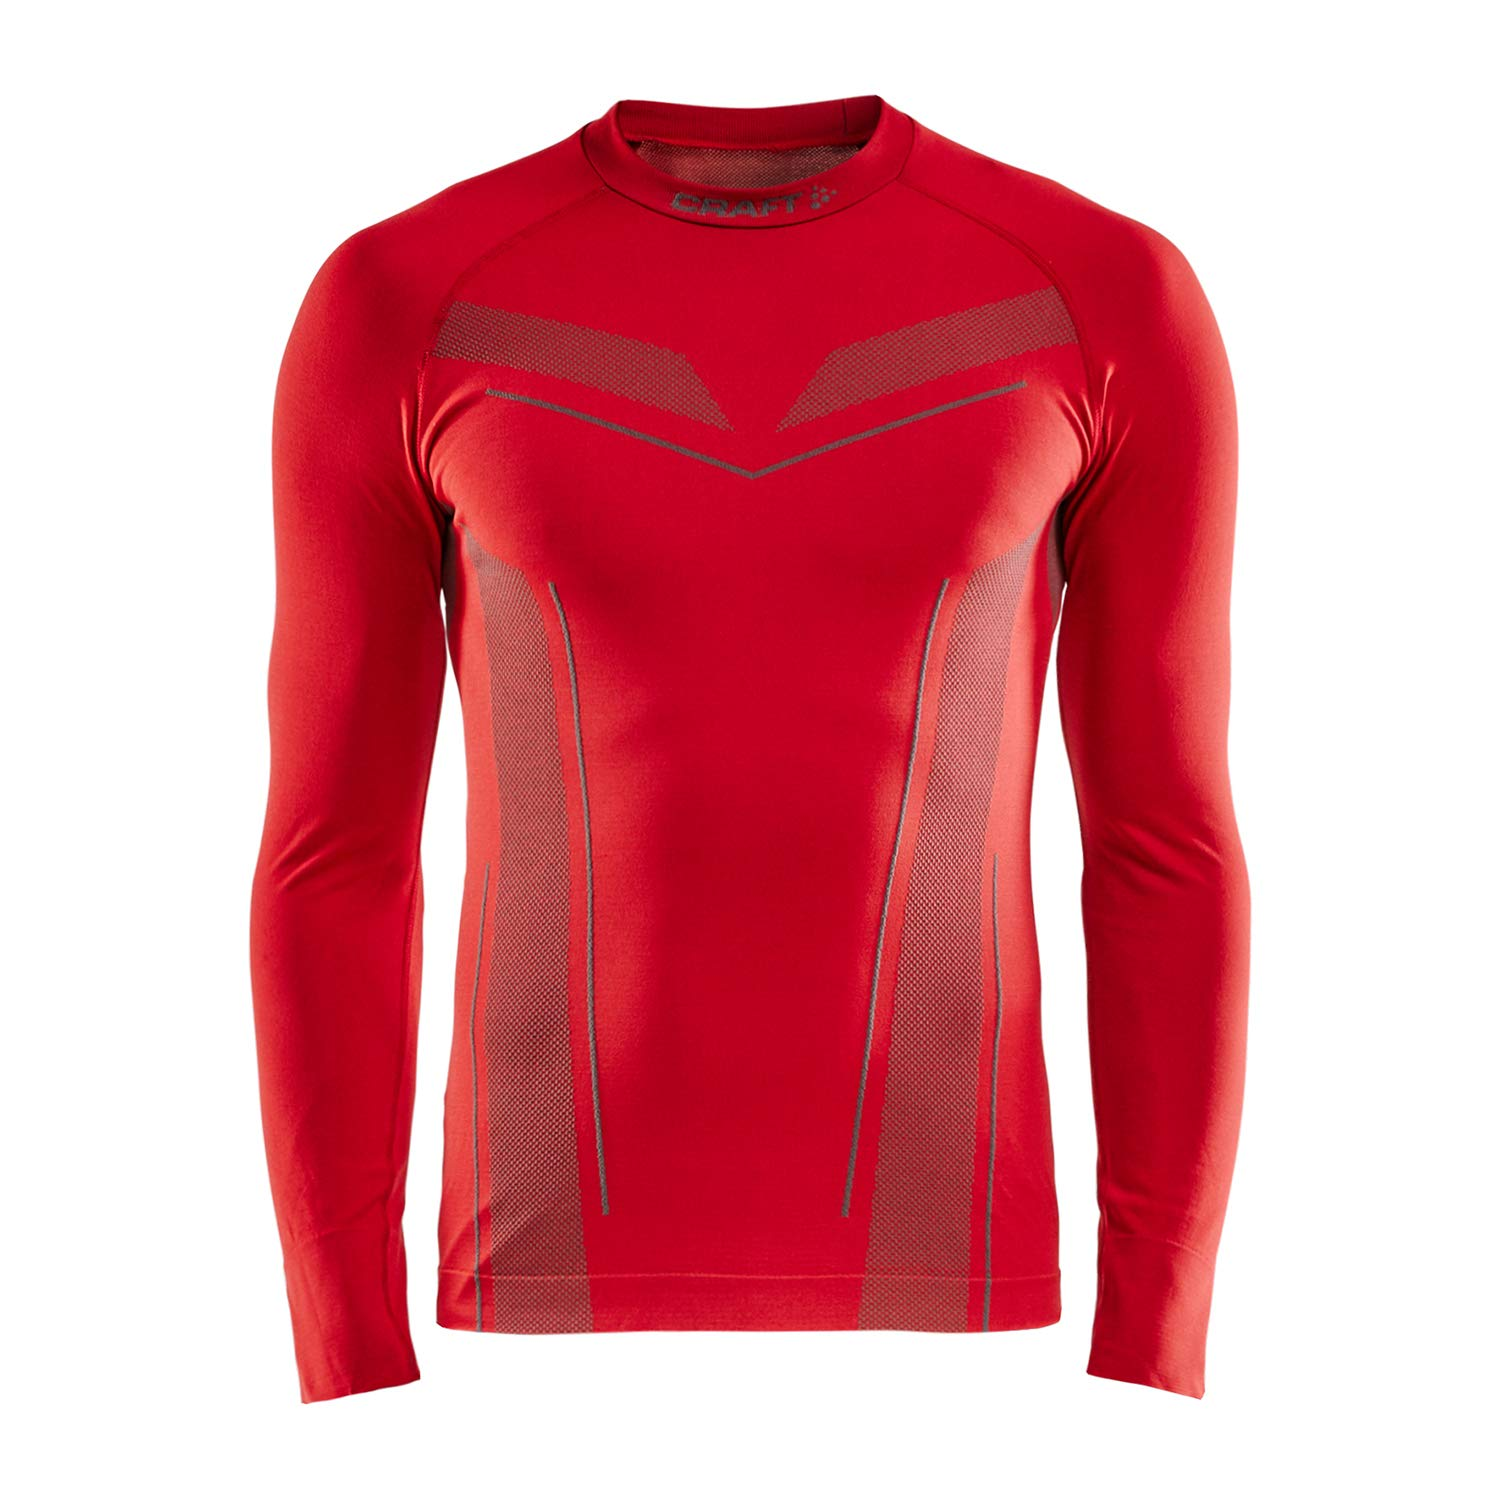 Craft Pro Control Men's Long Sleeve T Shirts - Athletic Base Layer Dry Fit Shirt